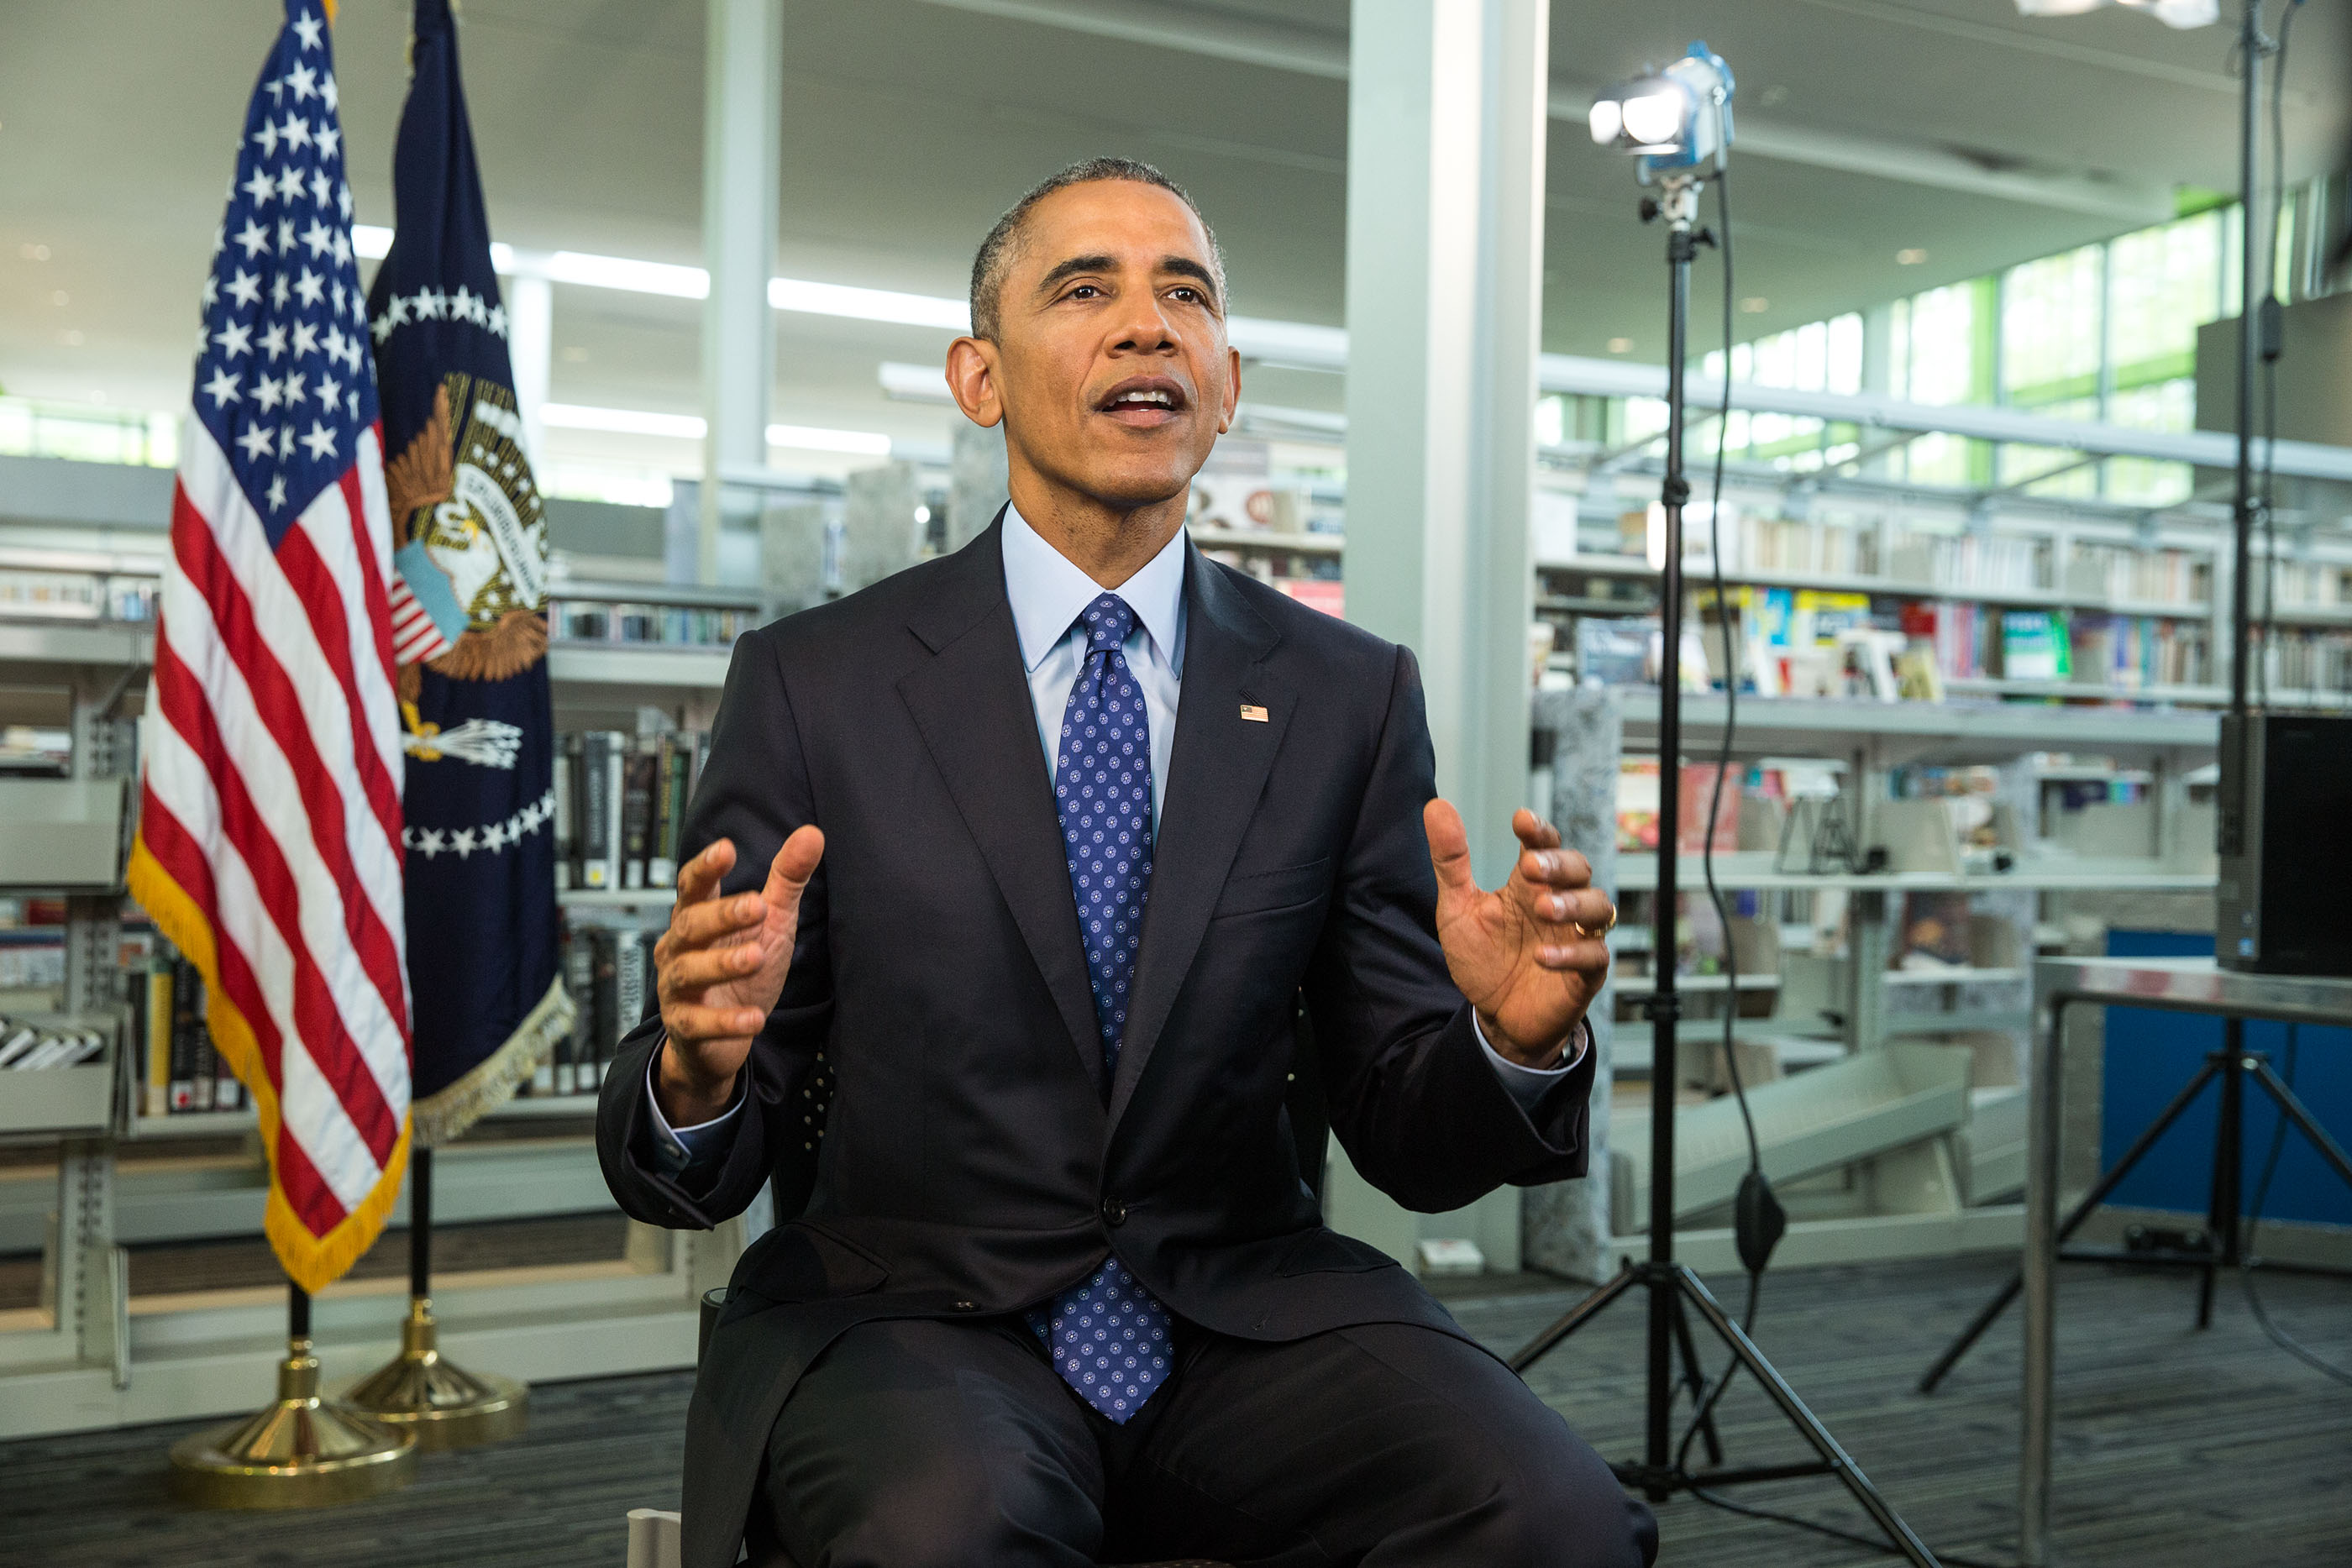 President Barack Obama tapes the Weekly Address at the Anacostia Neighborhood Library in Washington, D.C., April 30, 2015